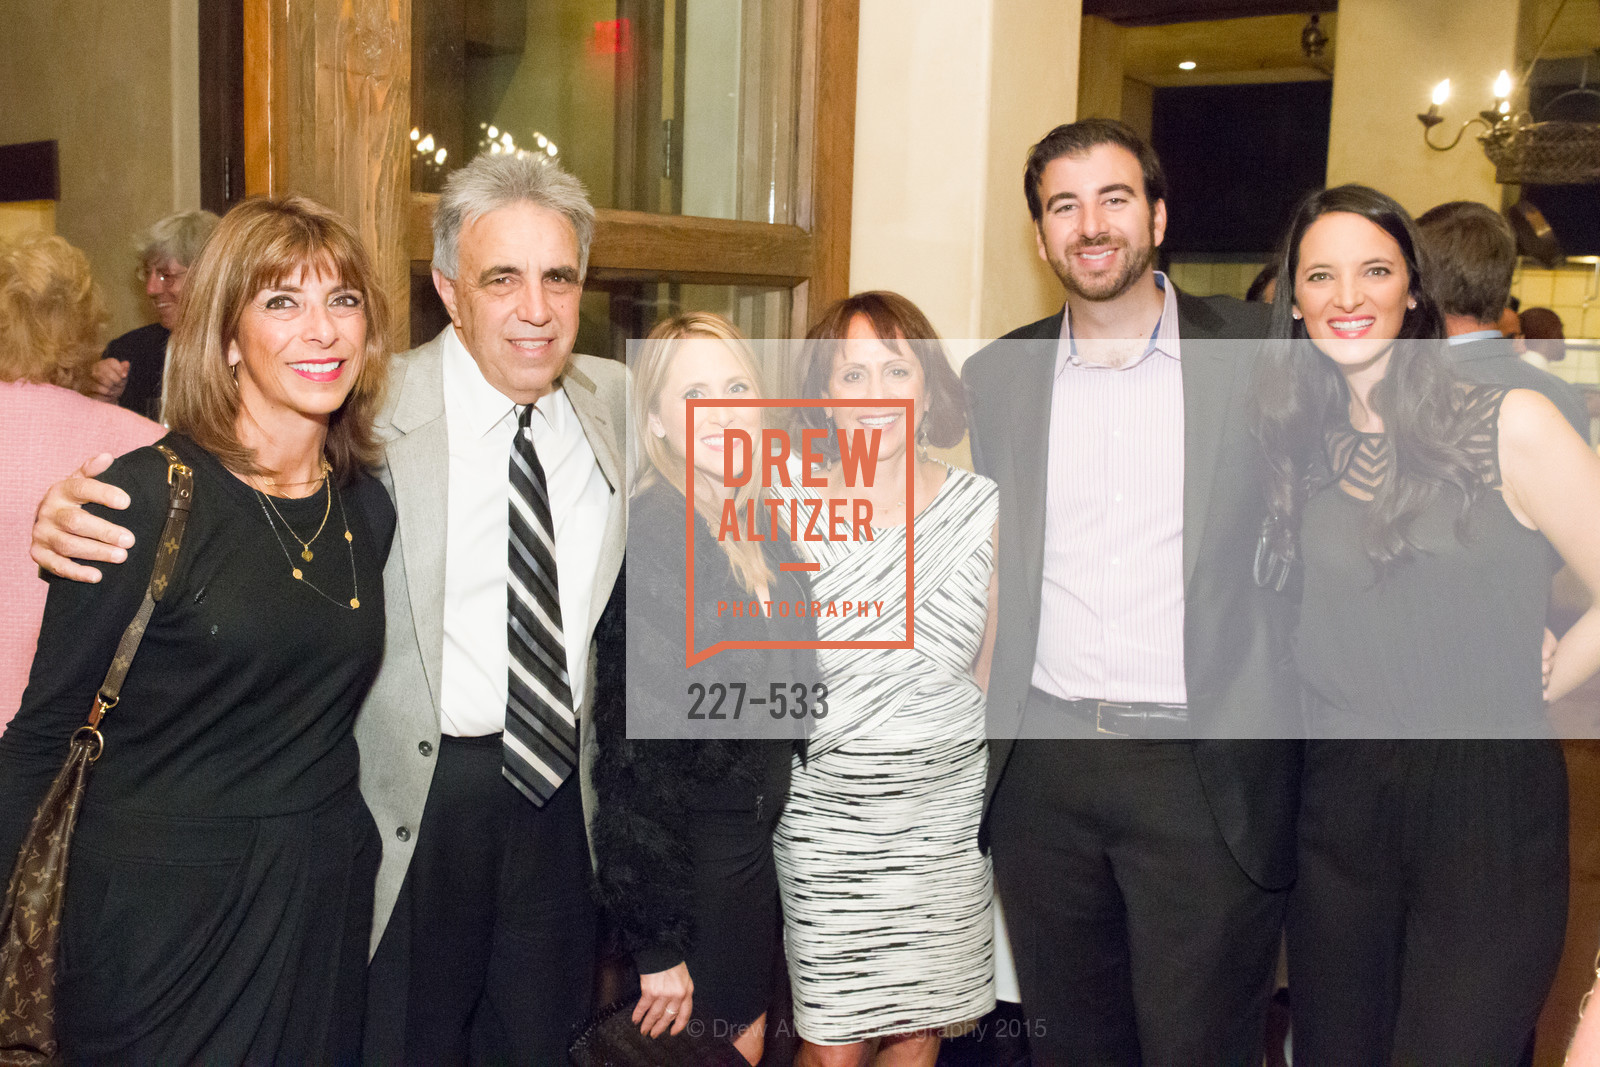 Paula Diamond, Nick Lampros, Vanessa Mockler, Linda Lampros, Nick Diamond, Elena Diamond, Hellenic Charity Ball Cocktail Reception, Kokkari. 200 Jackson St, San Francisco, CA 94111, November 13th, 2015,Drew Altizer, Drew Altizer Photography, full-service agency, private events, San Francisco photographer, photographer california